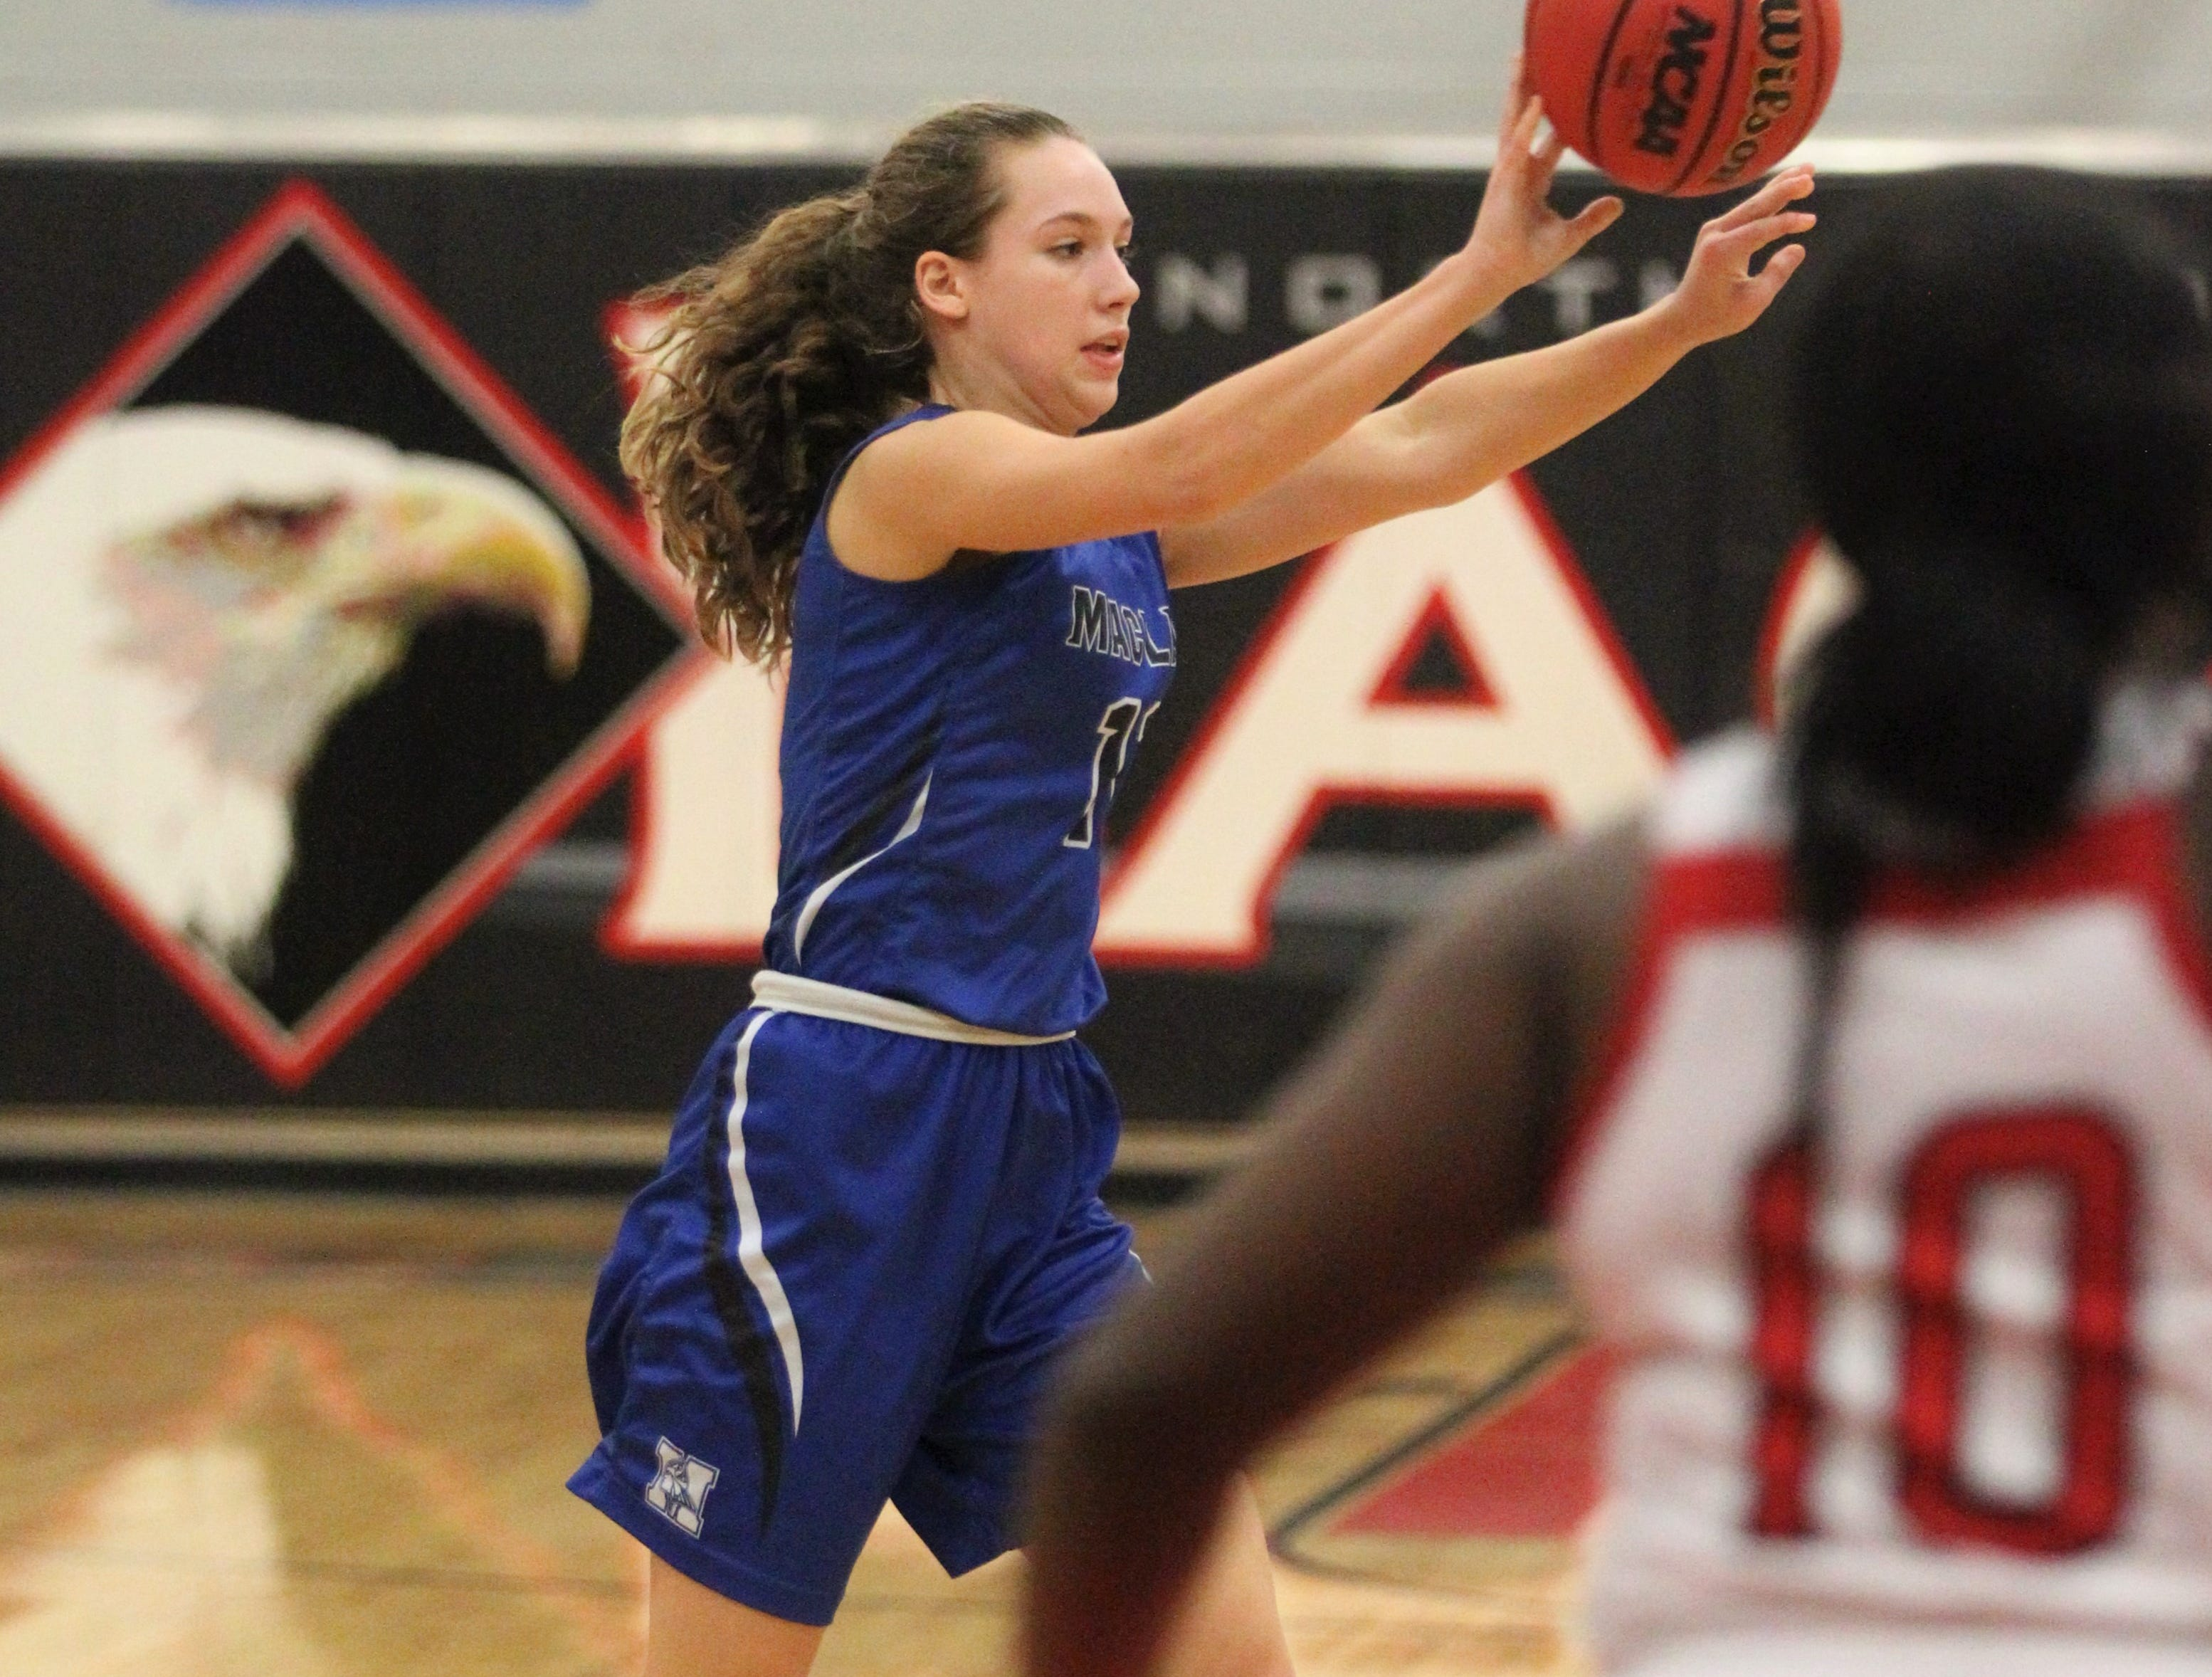 Maclay senior Jane-Kathryn Whittington makes a pass on the perimeter as NFC's girls basketball team beat Maclay 72-56 on Jan. 31, 2019.